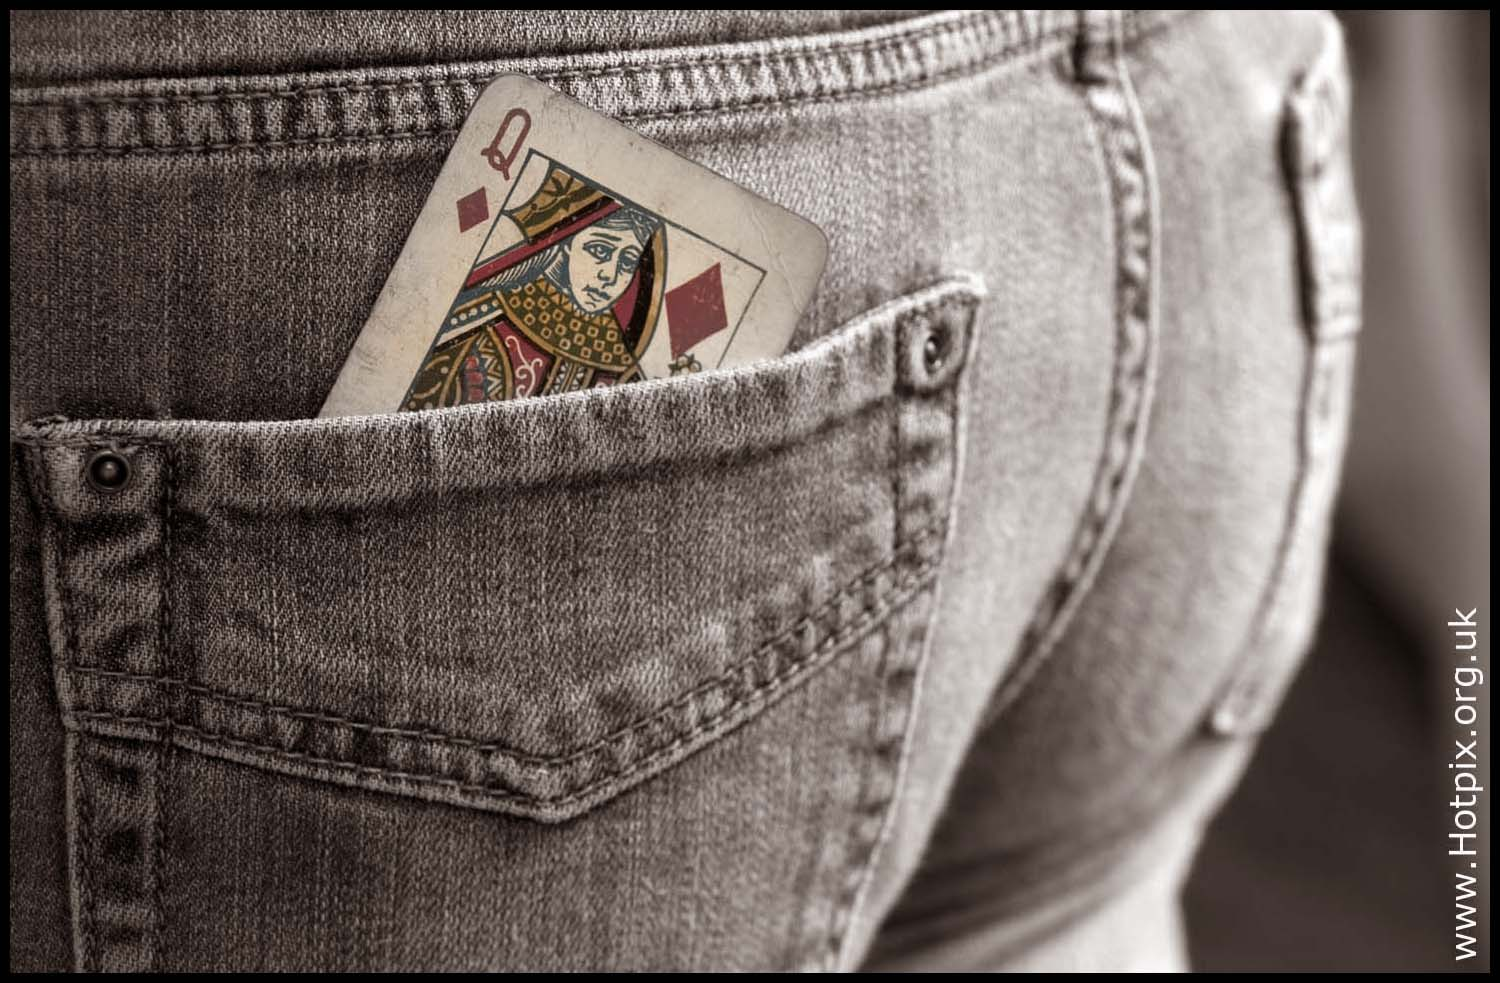 Playing,card,selective,colour,sepia,b/w,red,lady,jean,bottom,woman,womans,jeans,blue,ass,desaturated,muchacha,femenina,de,la,mujer,se\u00f1ora,female,girl,\u5973\u6027\u30e1\u30b9\u306e\u5973\u6027\u306e\u5973\u306e\u5b50,\u592b\u4eba\u5973\u6027\u5987\u5973\u5973\u5b69,fille,f\u00e9minine,femme,dame,hotpix!